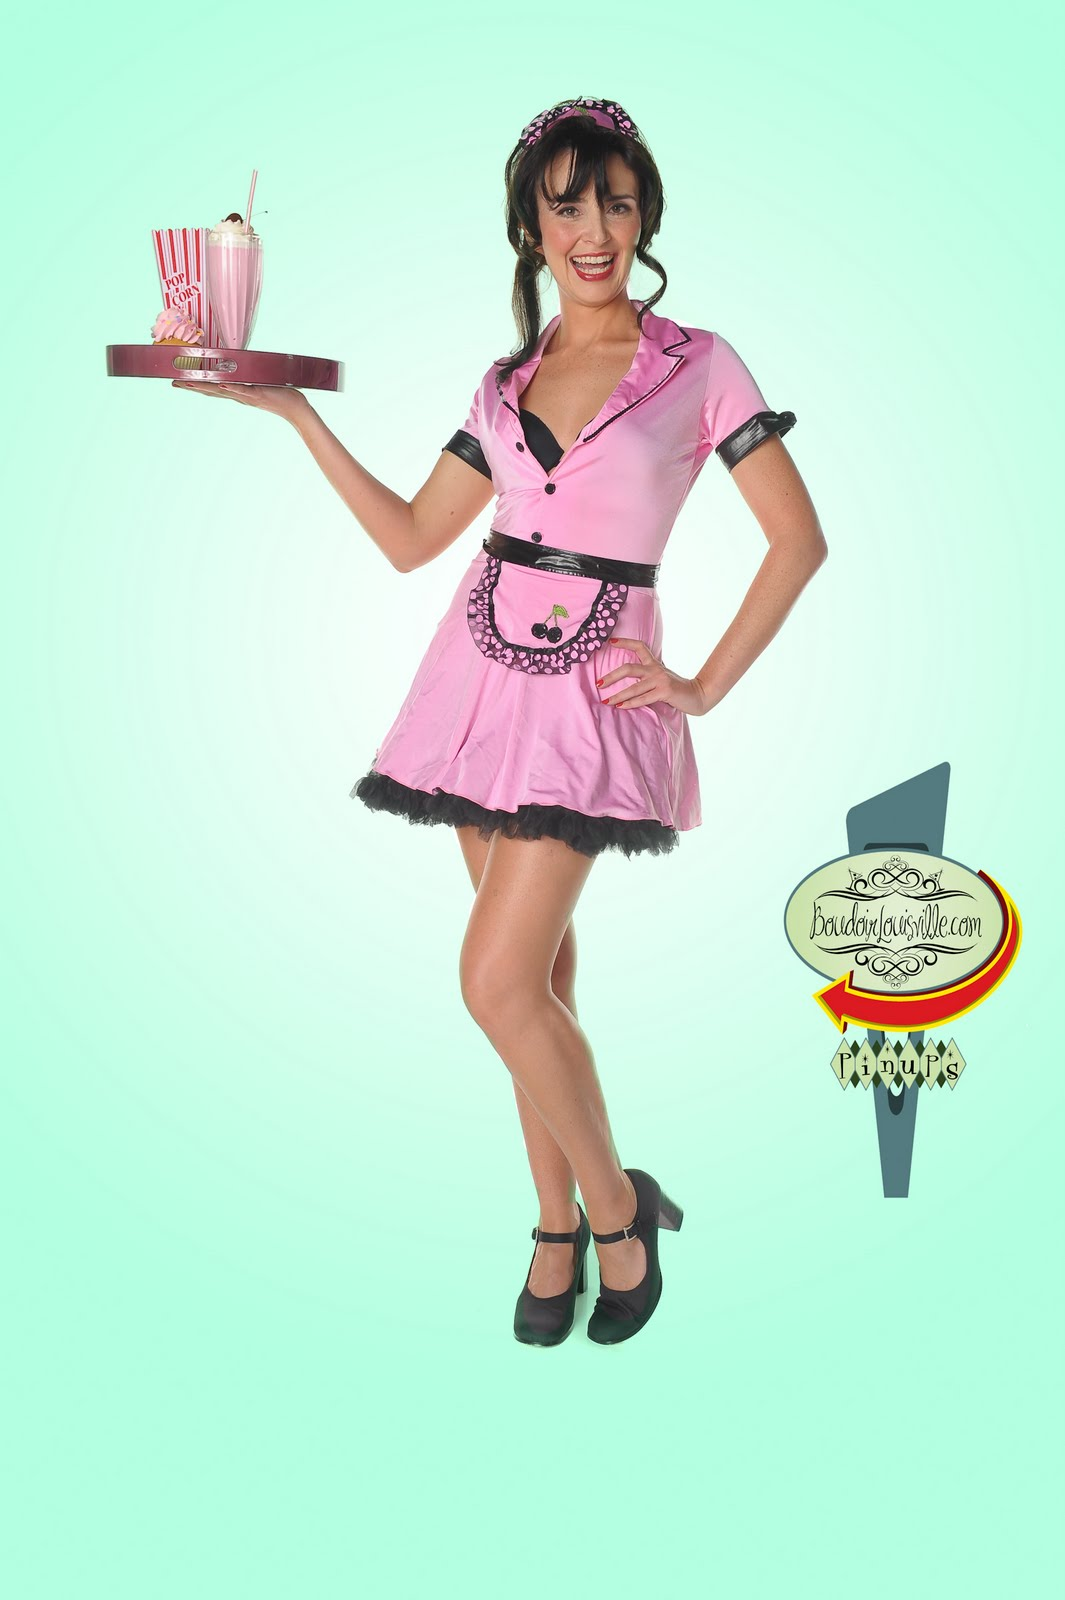 own Pinup photo shoot,